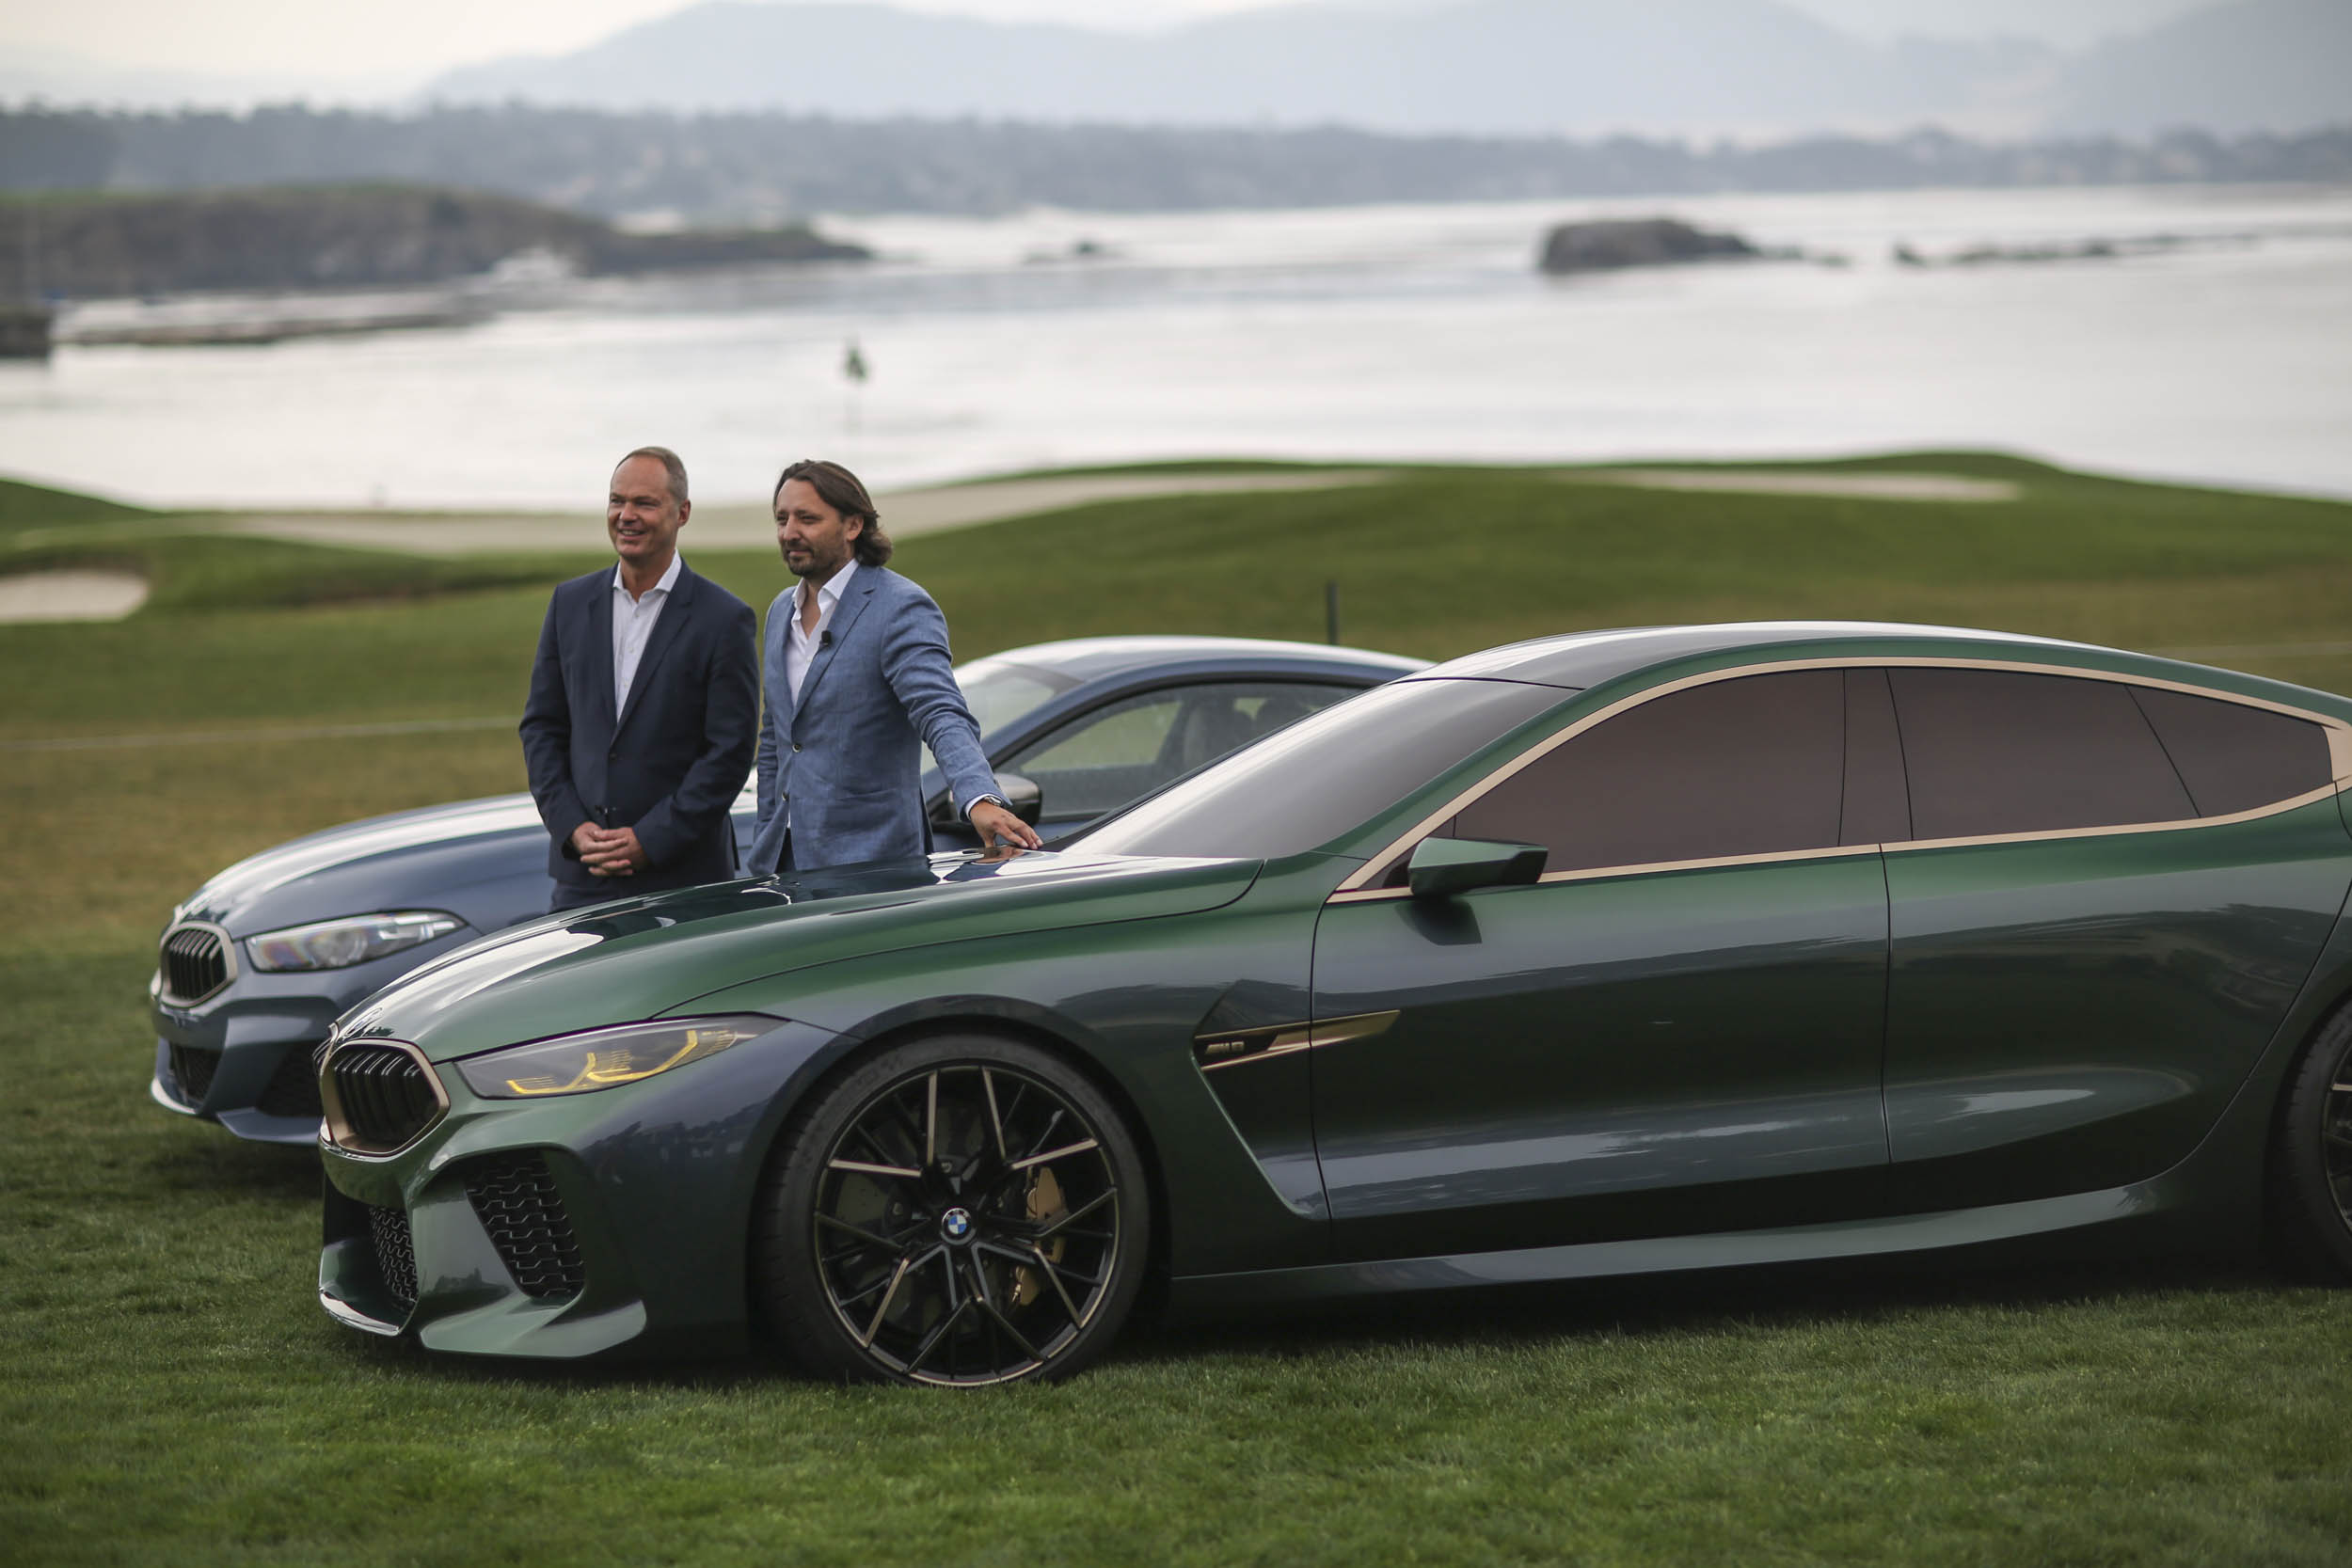 BMW M8 Gran Coupe on the lawn of pebble beach